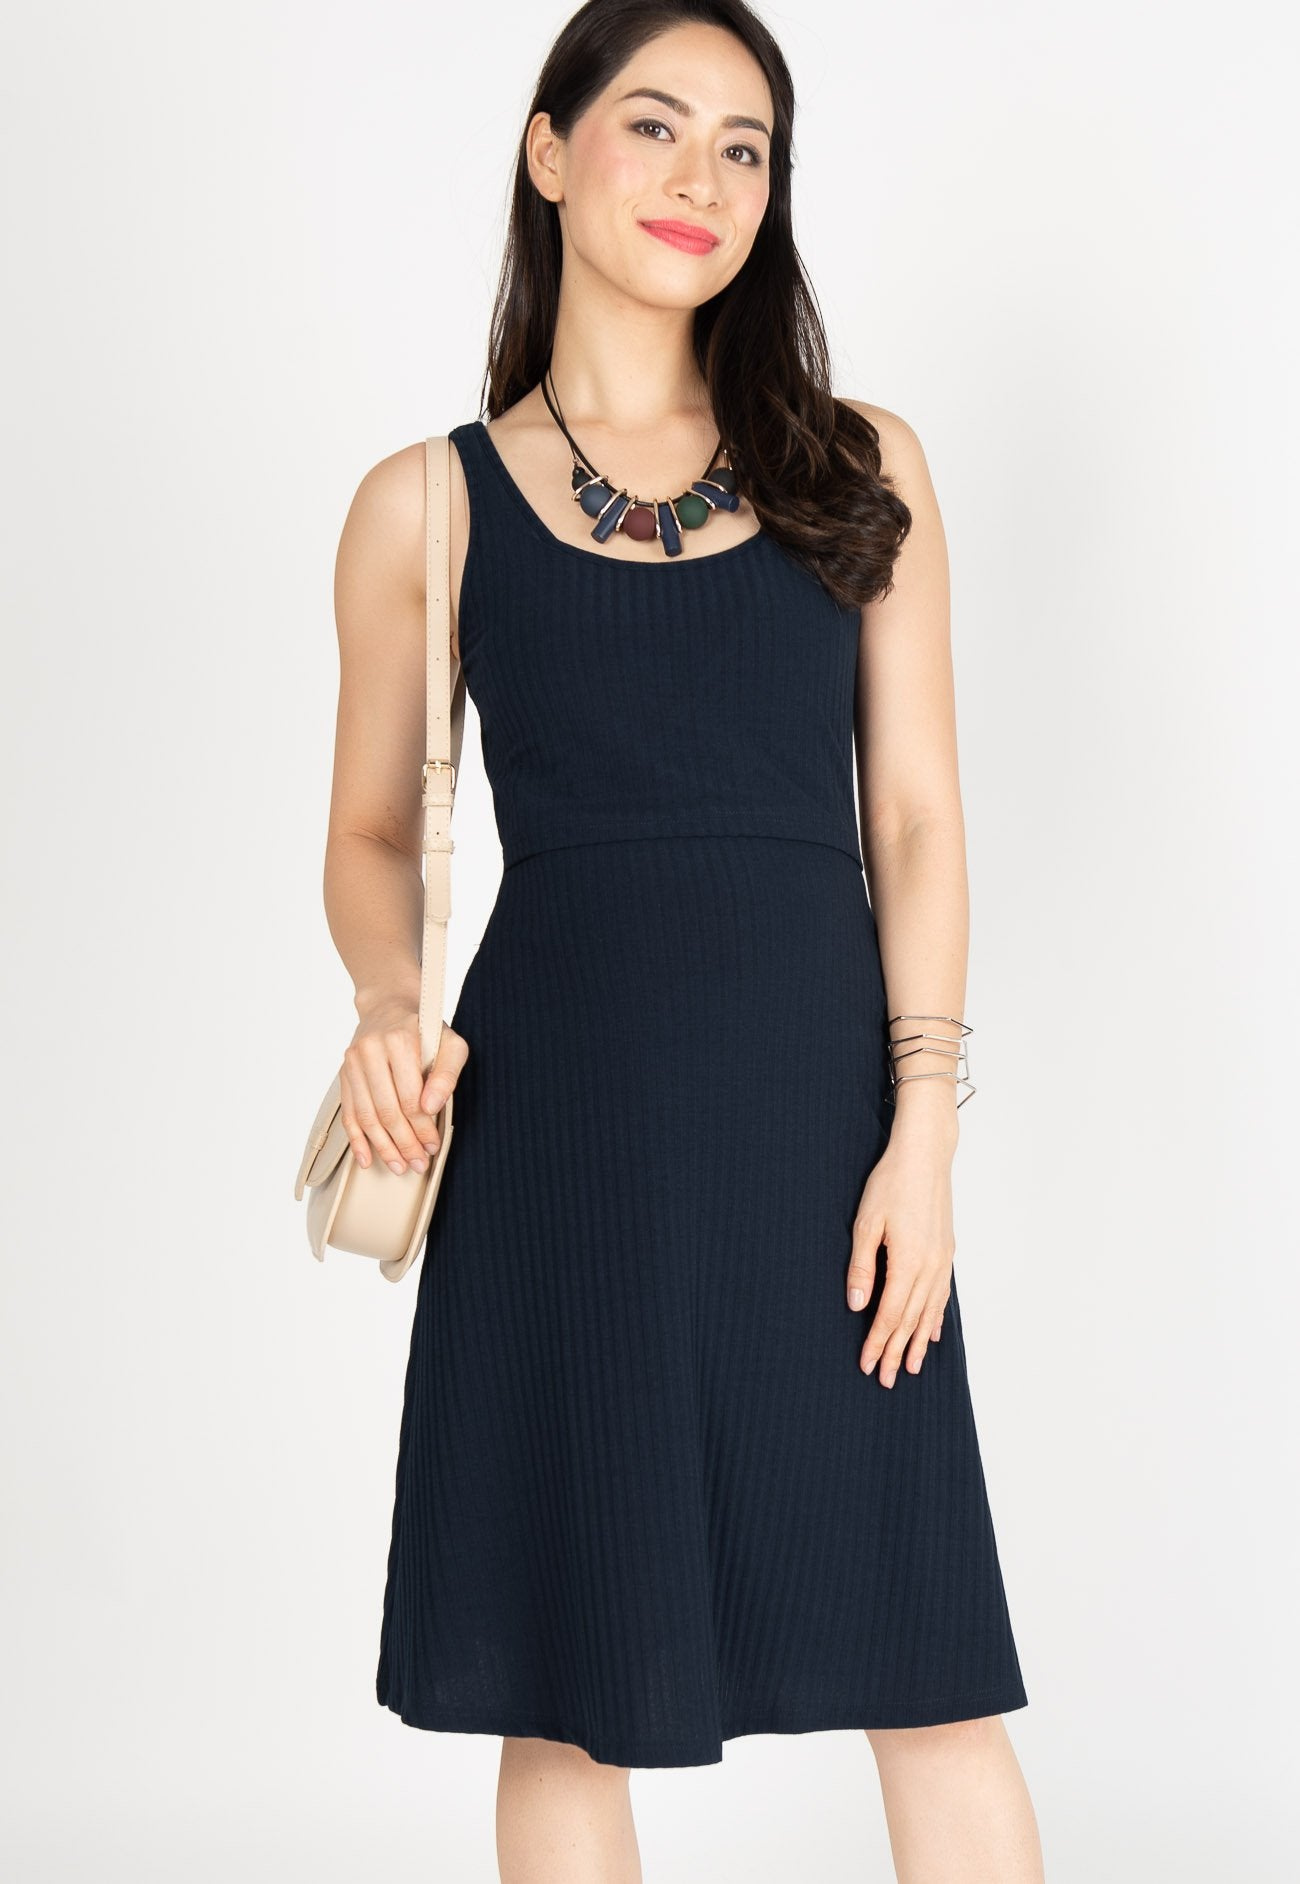 Mothercot Knitted Nursing Swing Dress in Navy  by JumpEatCry - Maternity and nursing wear